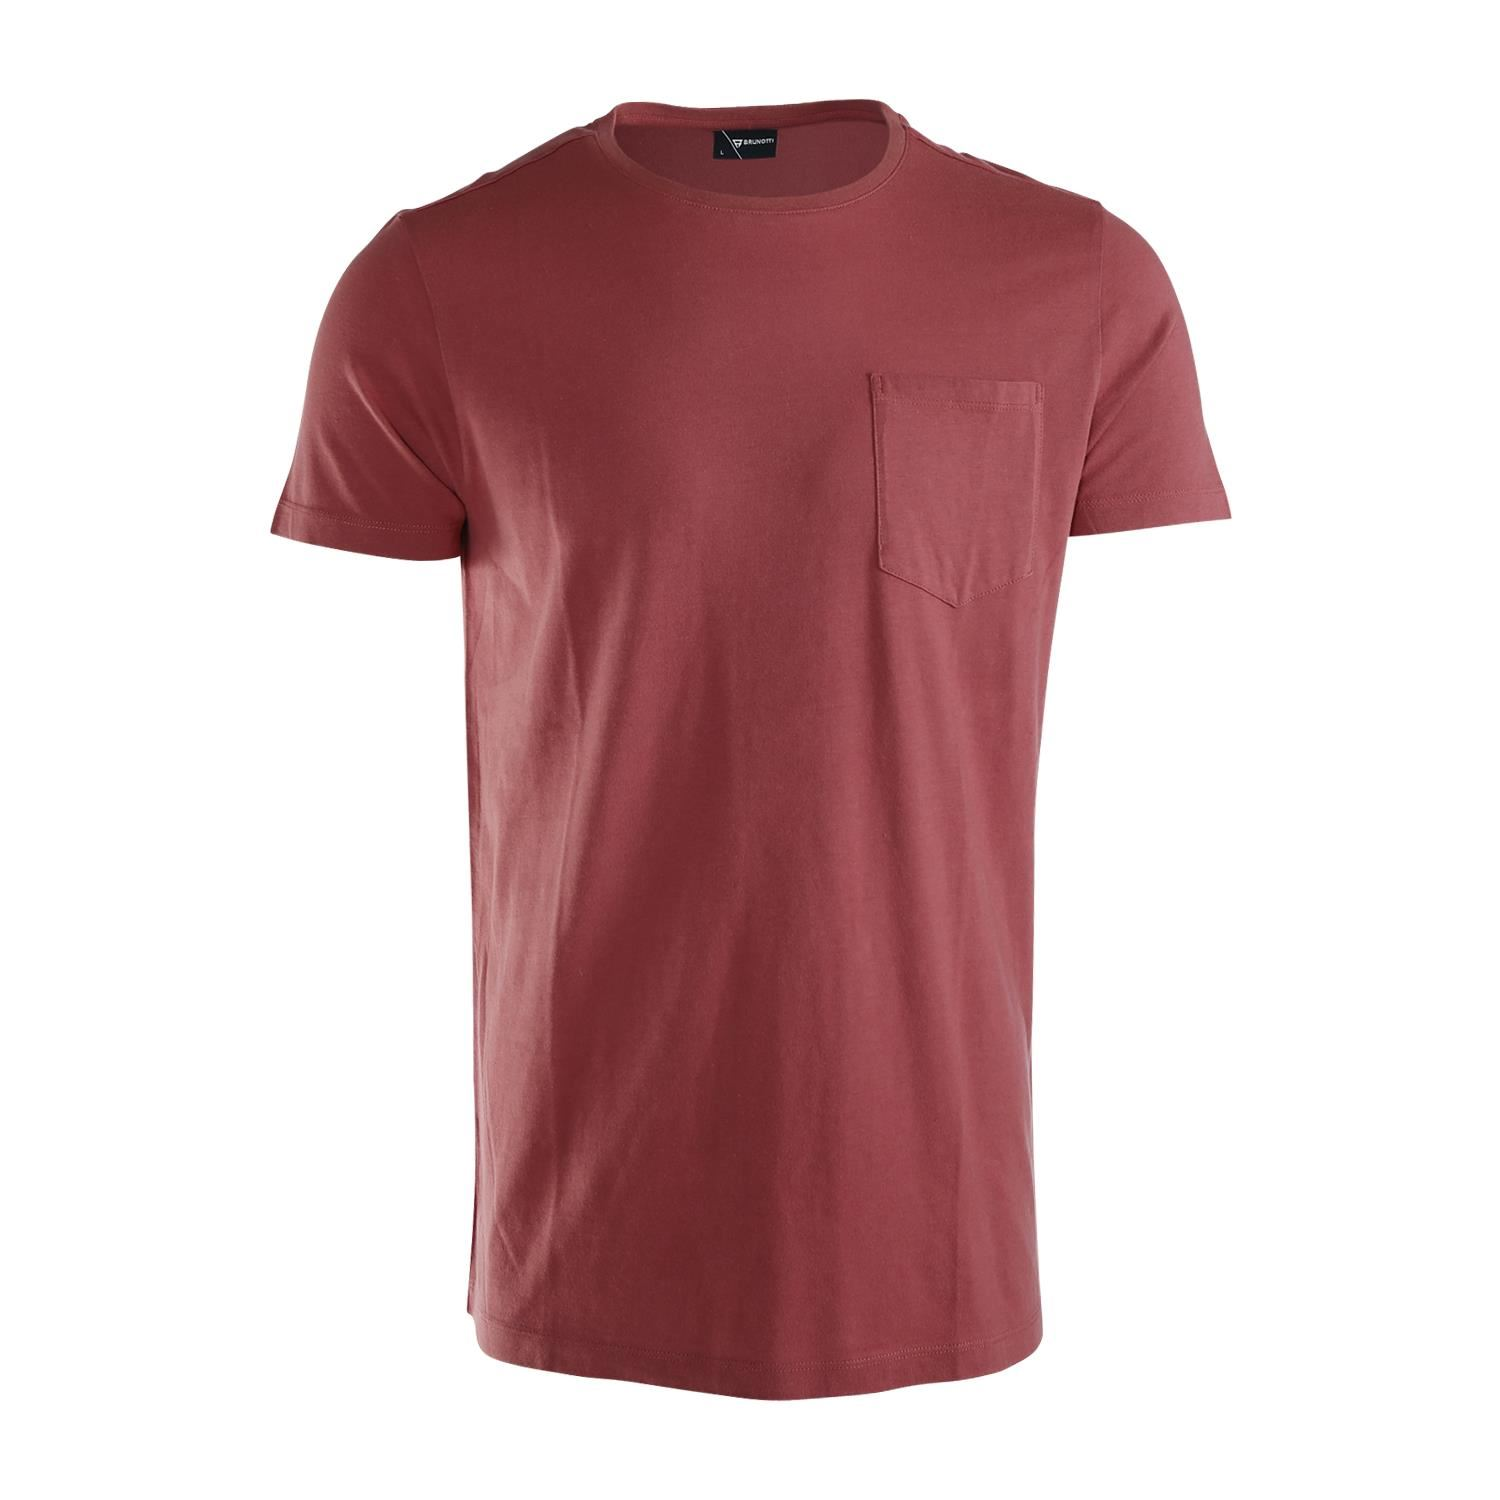 Brunotti Axle  (red) - men t-shirts & polos - Brunotti online shop